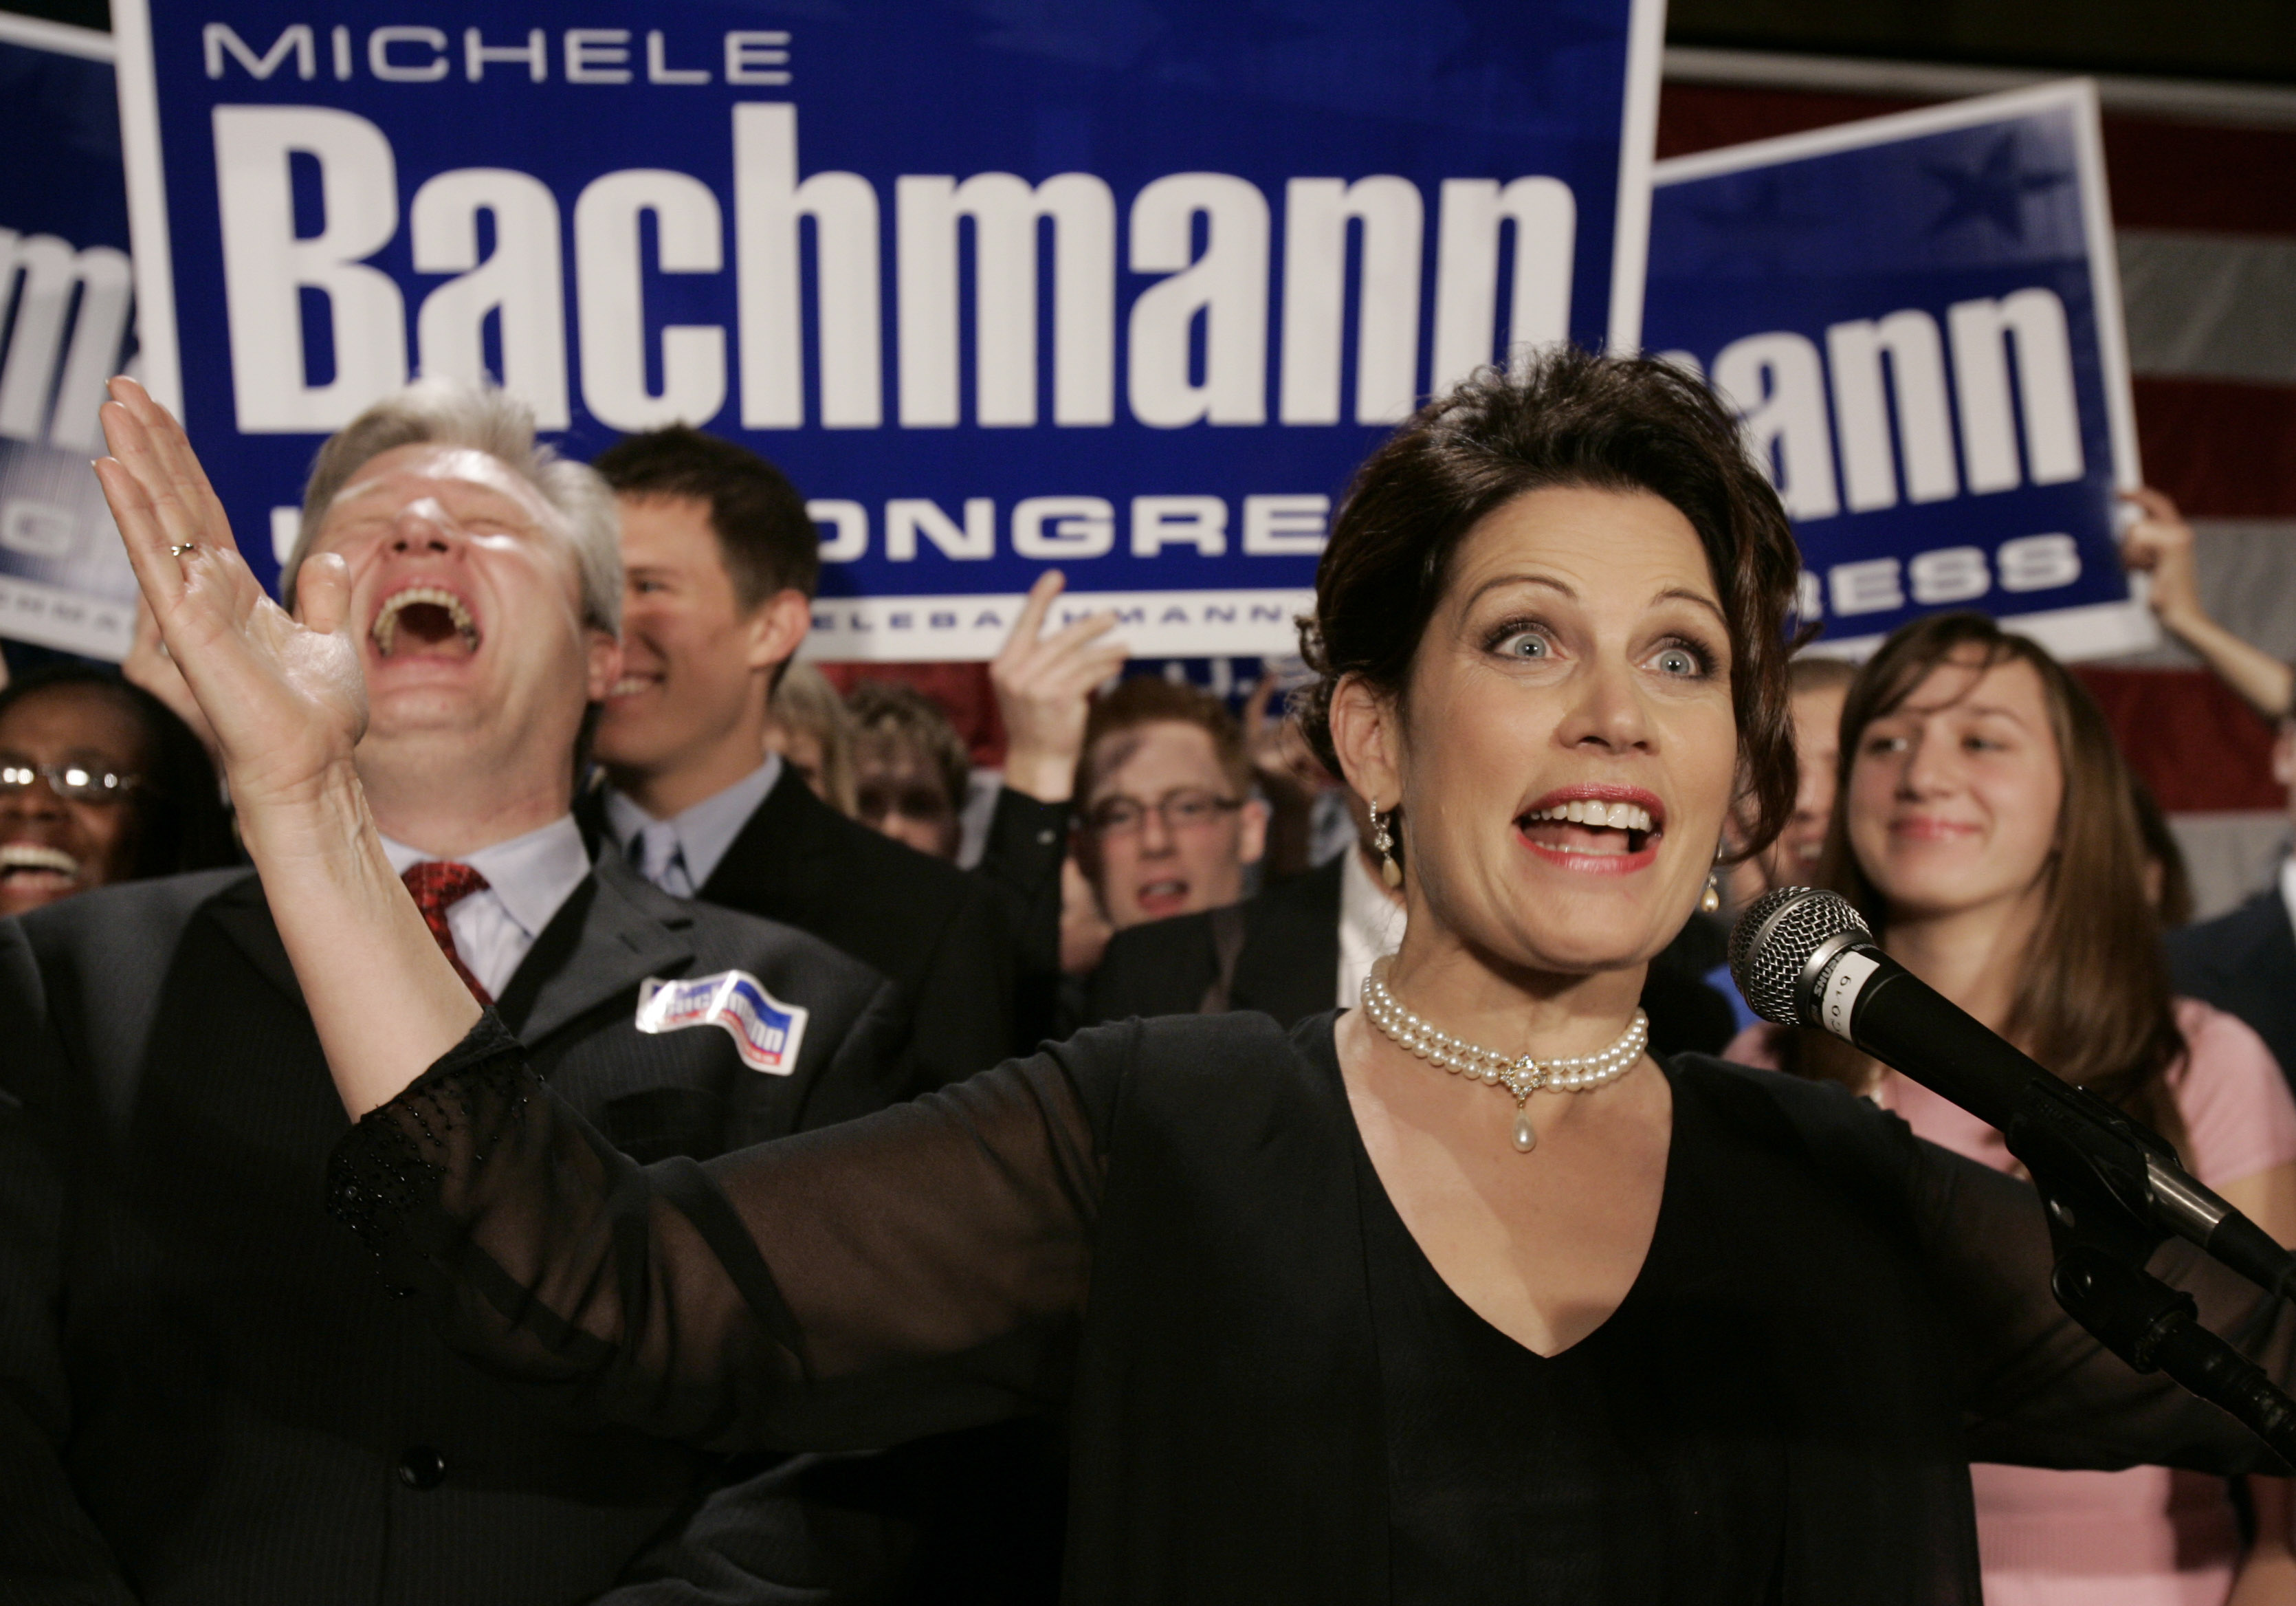 Click here to read Michele Bachmann Rejects Swiss Citizenship Because God Bless America